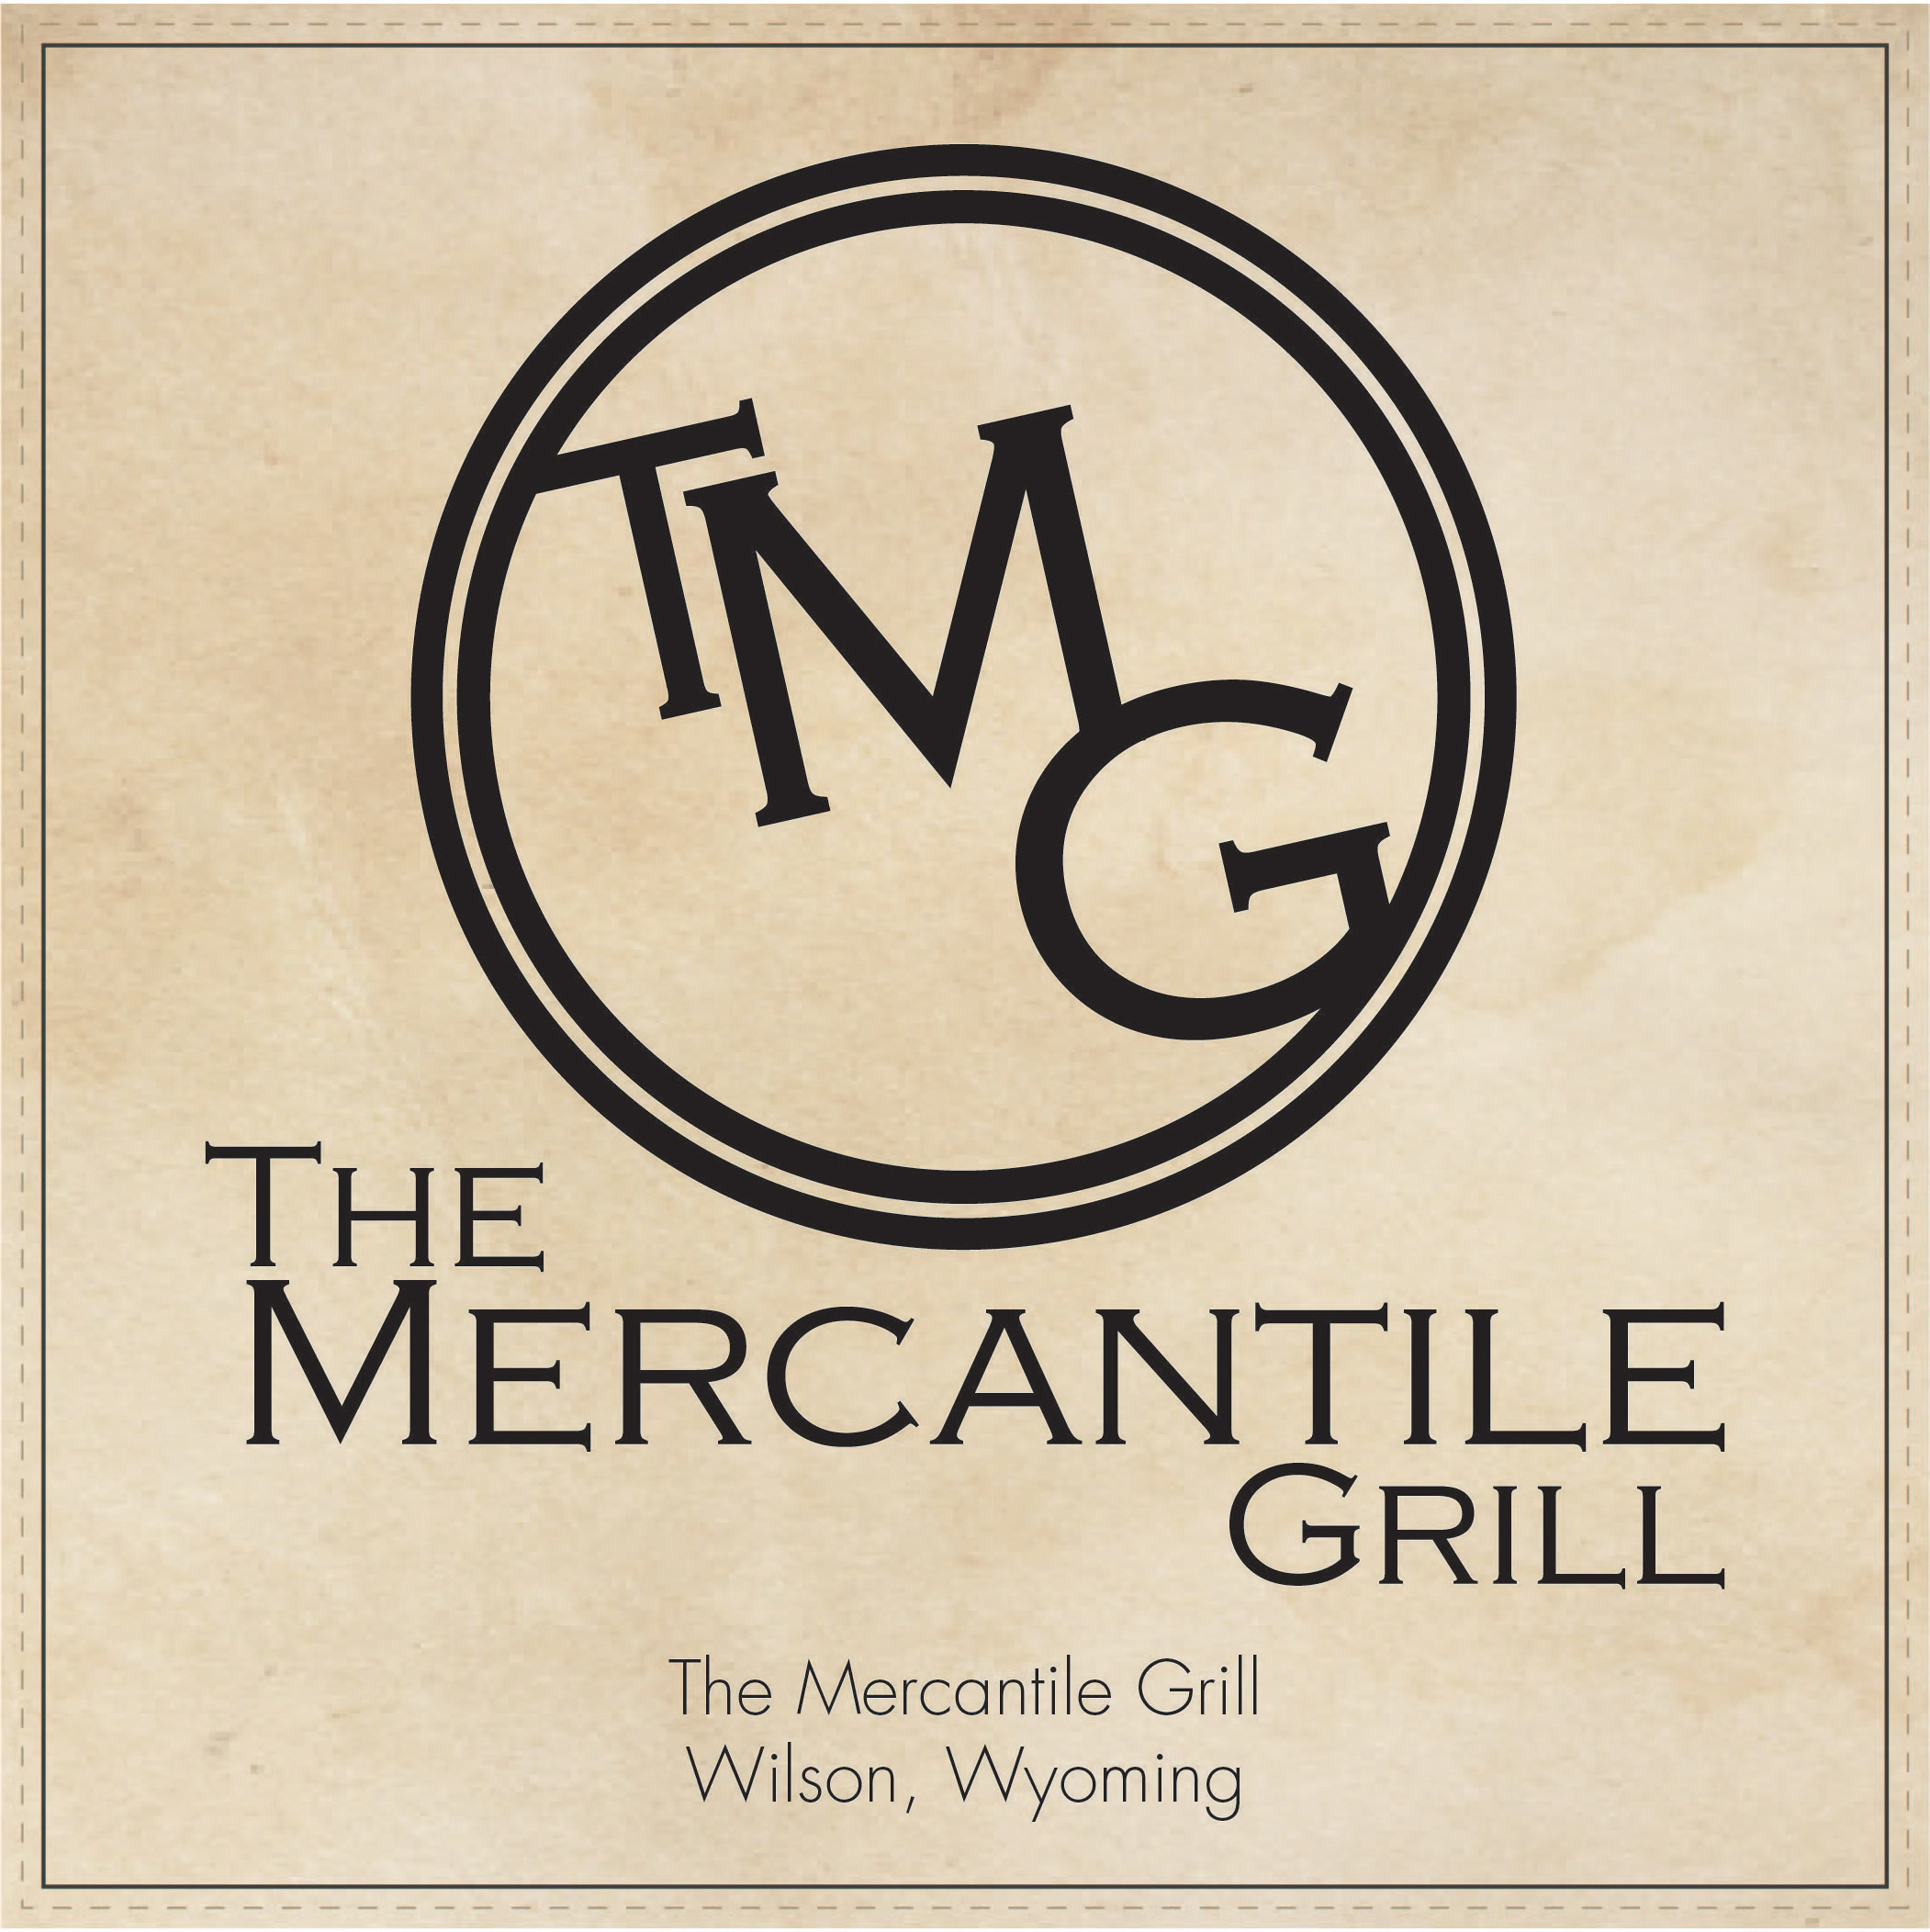 The Mercantile Grill